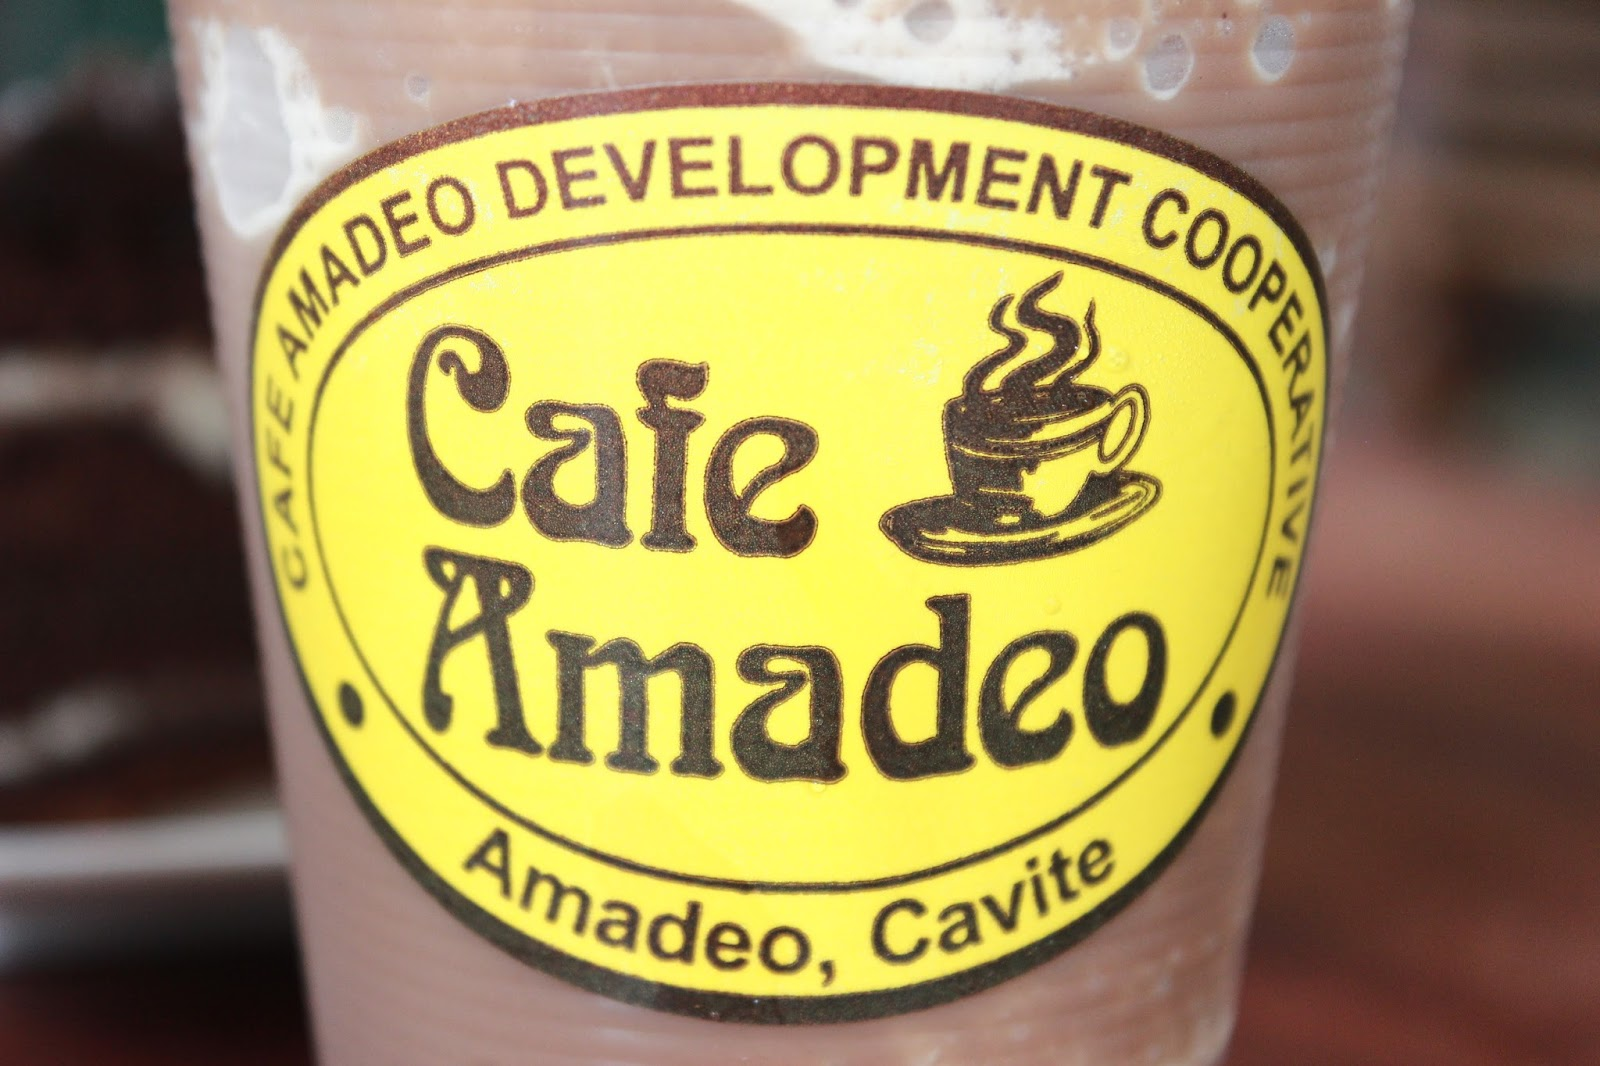 Cafe Amadeo Development Cooperative Case Study